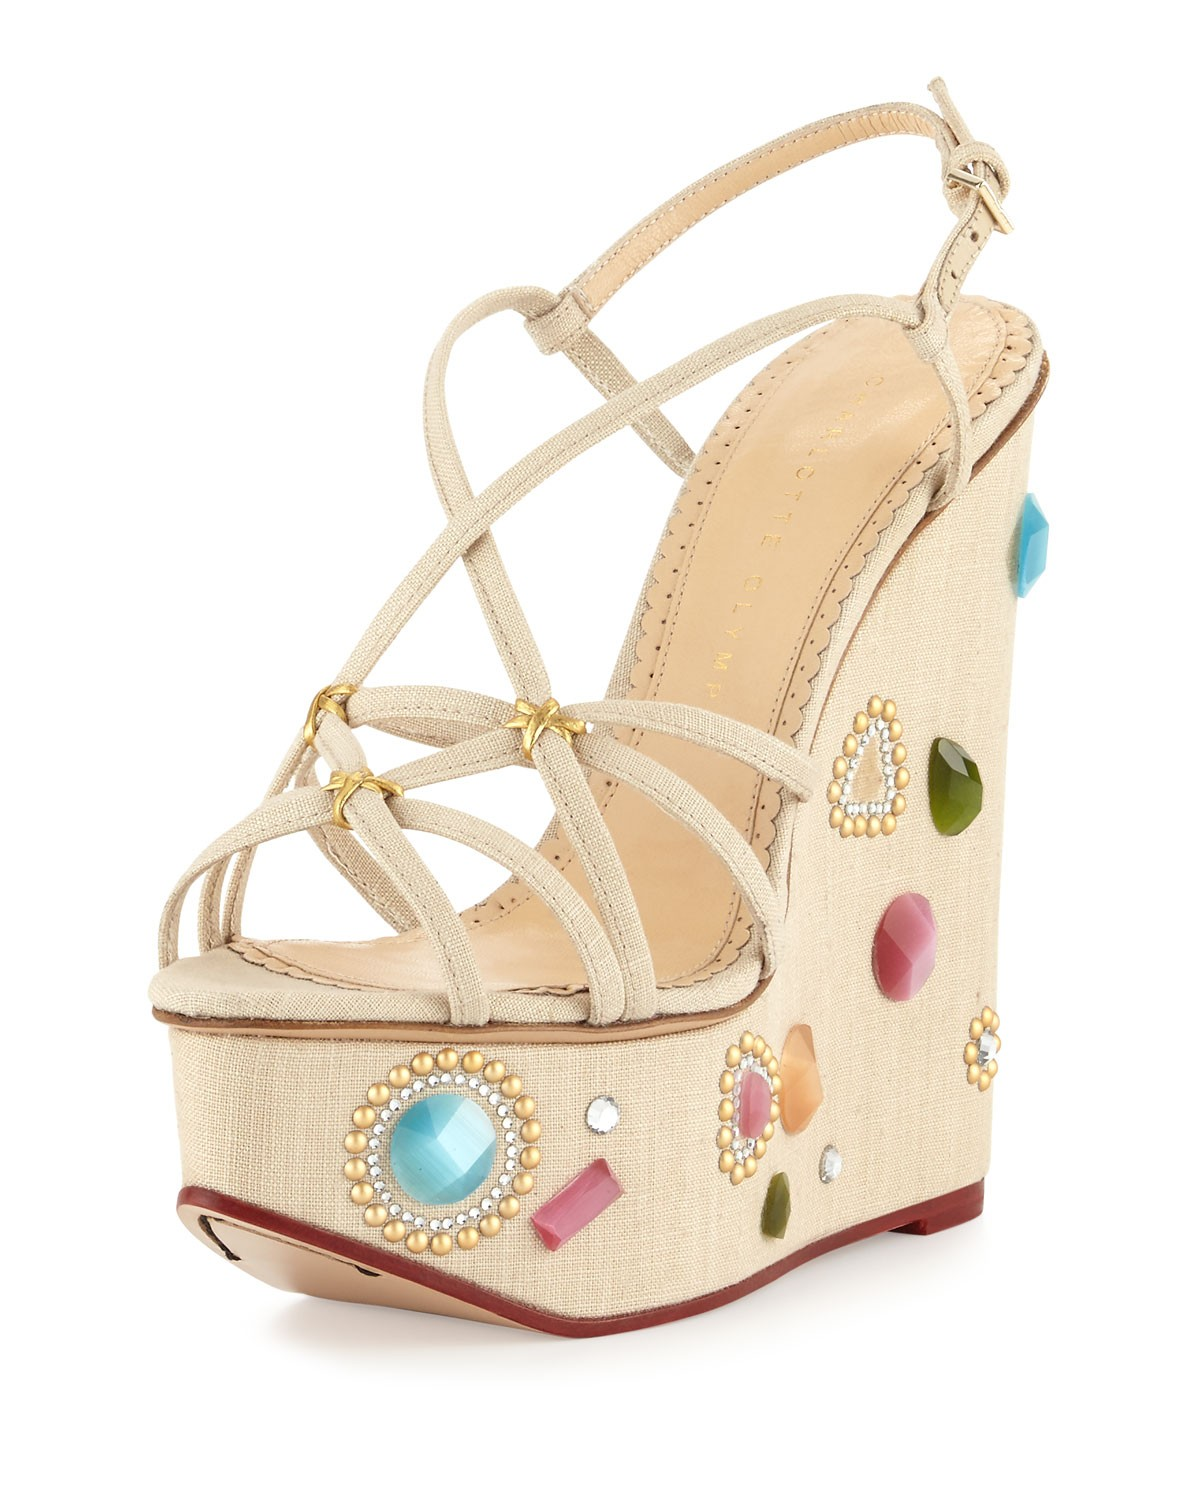 Elizabeth Jeweled Wedge Sandal, Natural - Charlotte Olympia